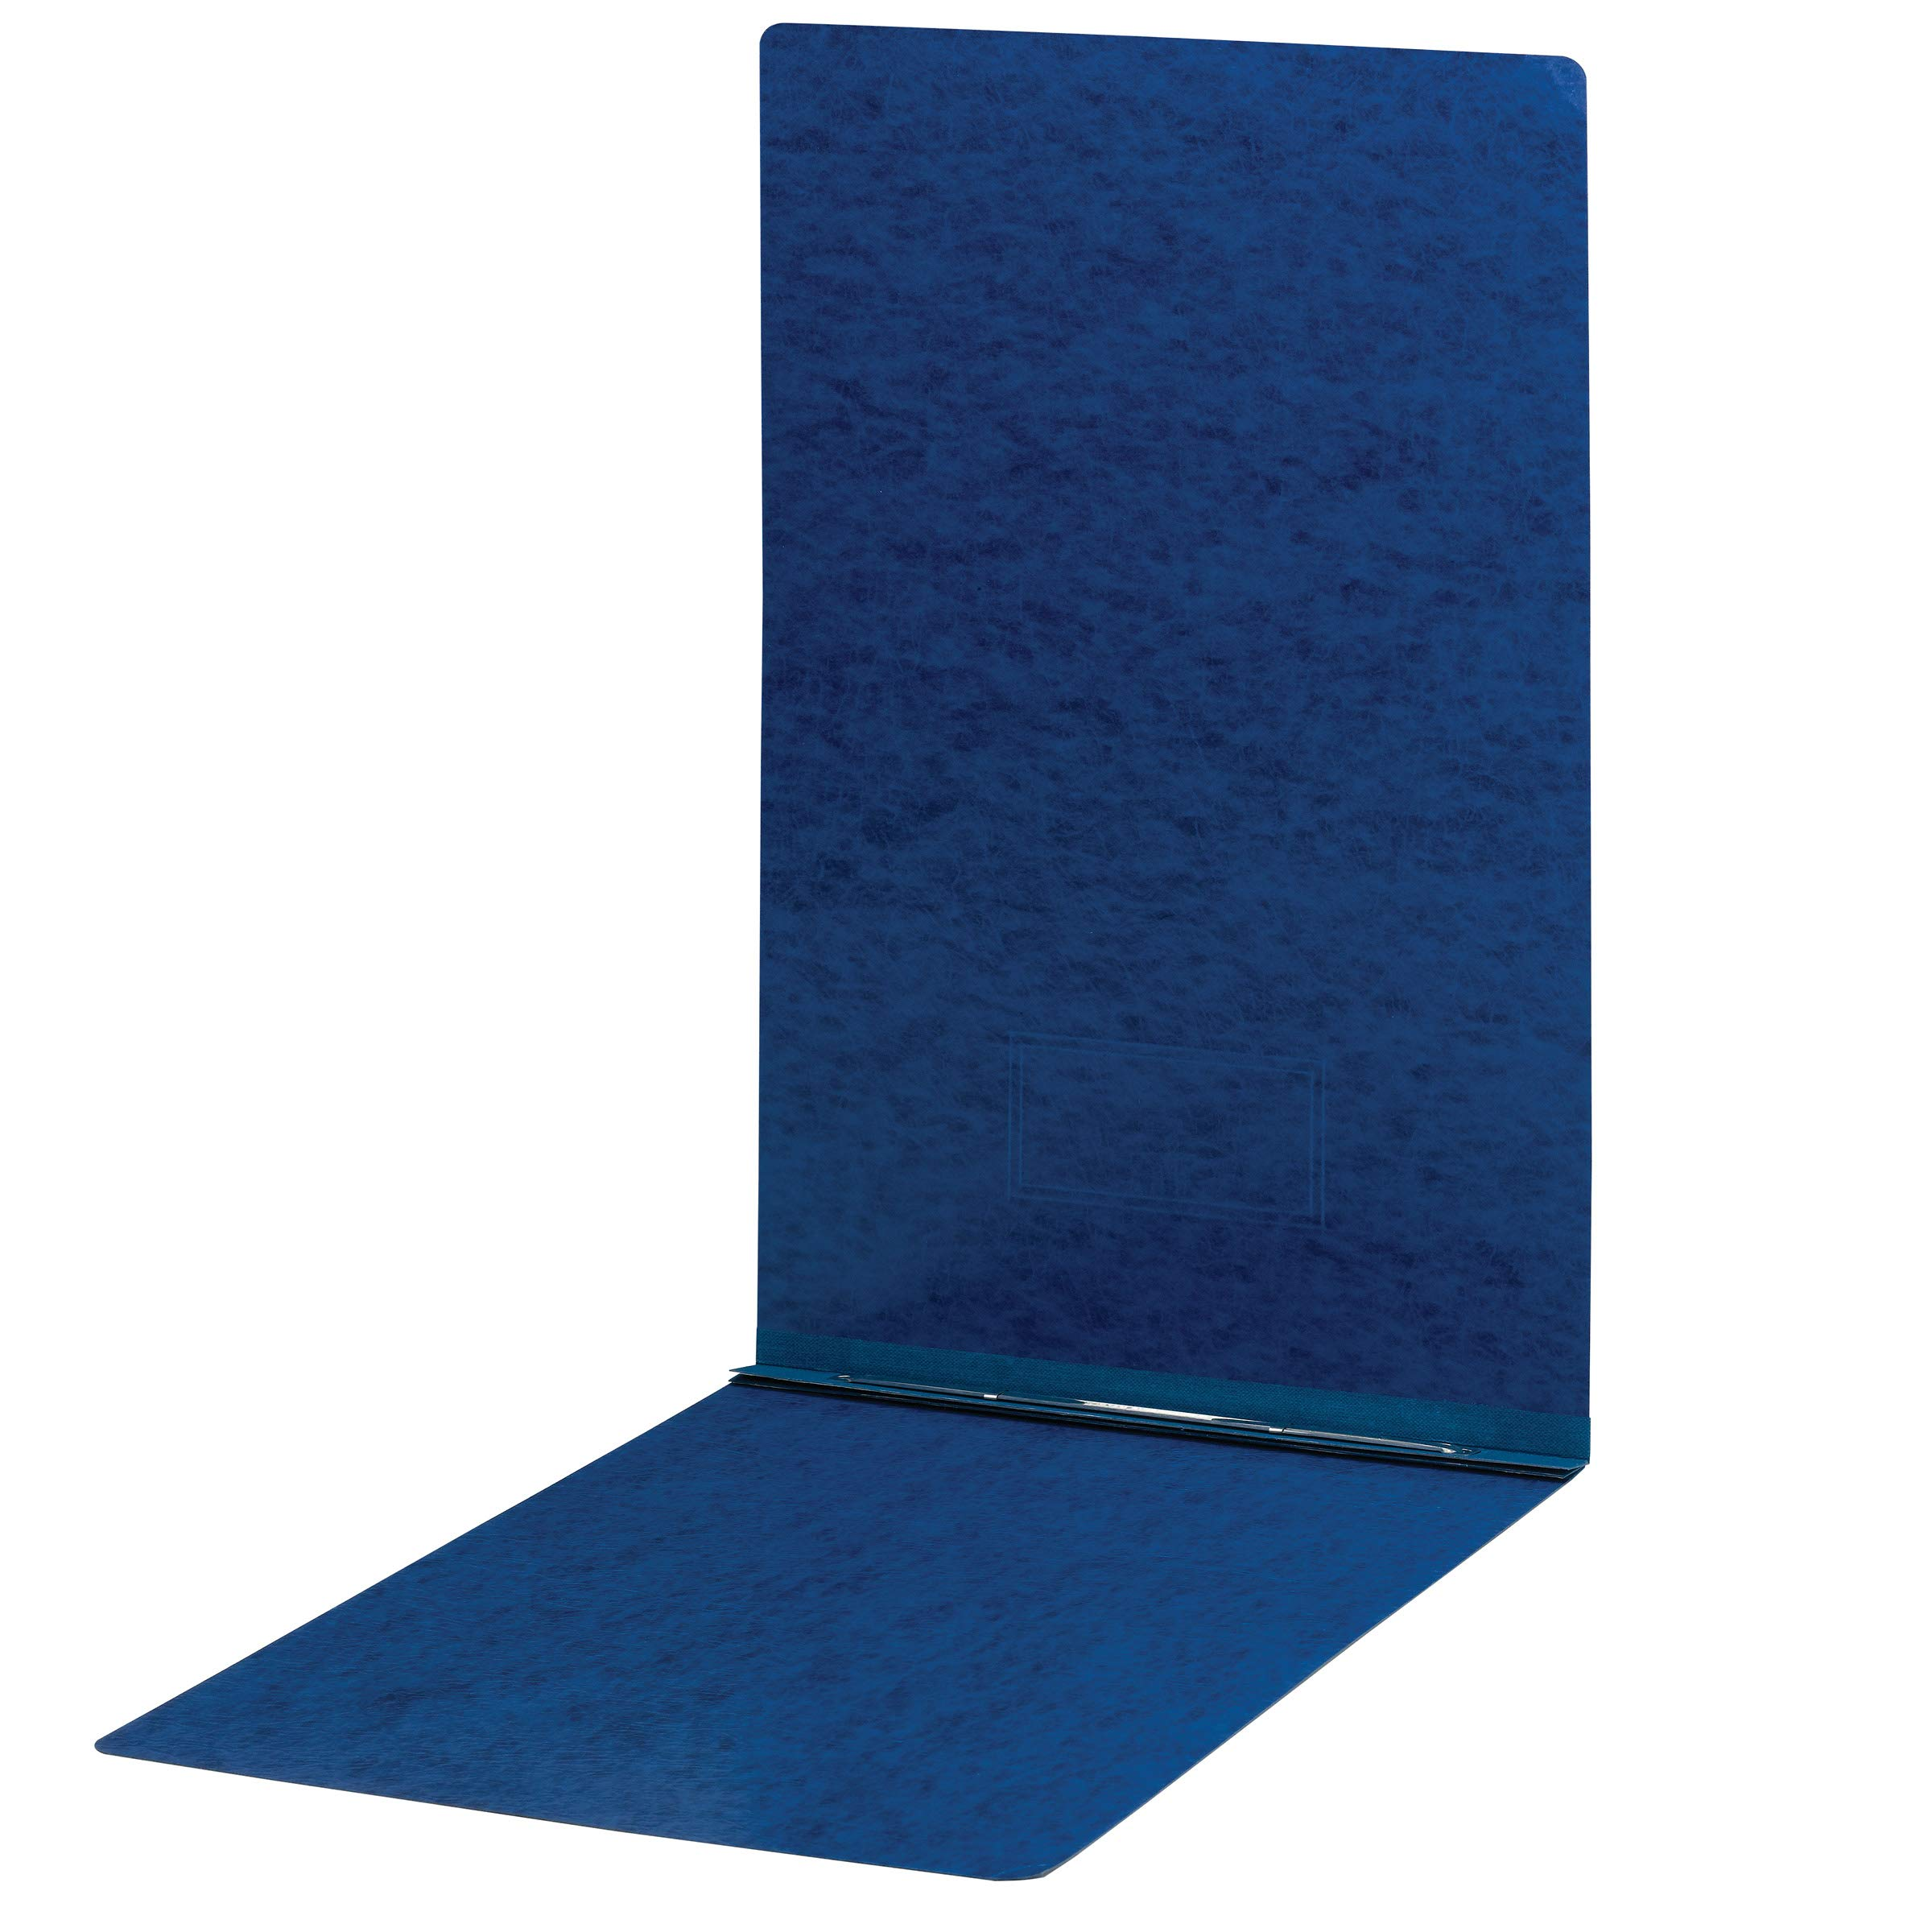 Smead PressGuard Report Cover, Metal Prong Top Fastener with Compressor, 3'' Capacity, Sheet Size 11'' x 17'', Dark Blue, 10 per Box (81378) by Smead